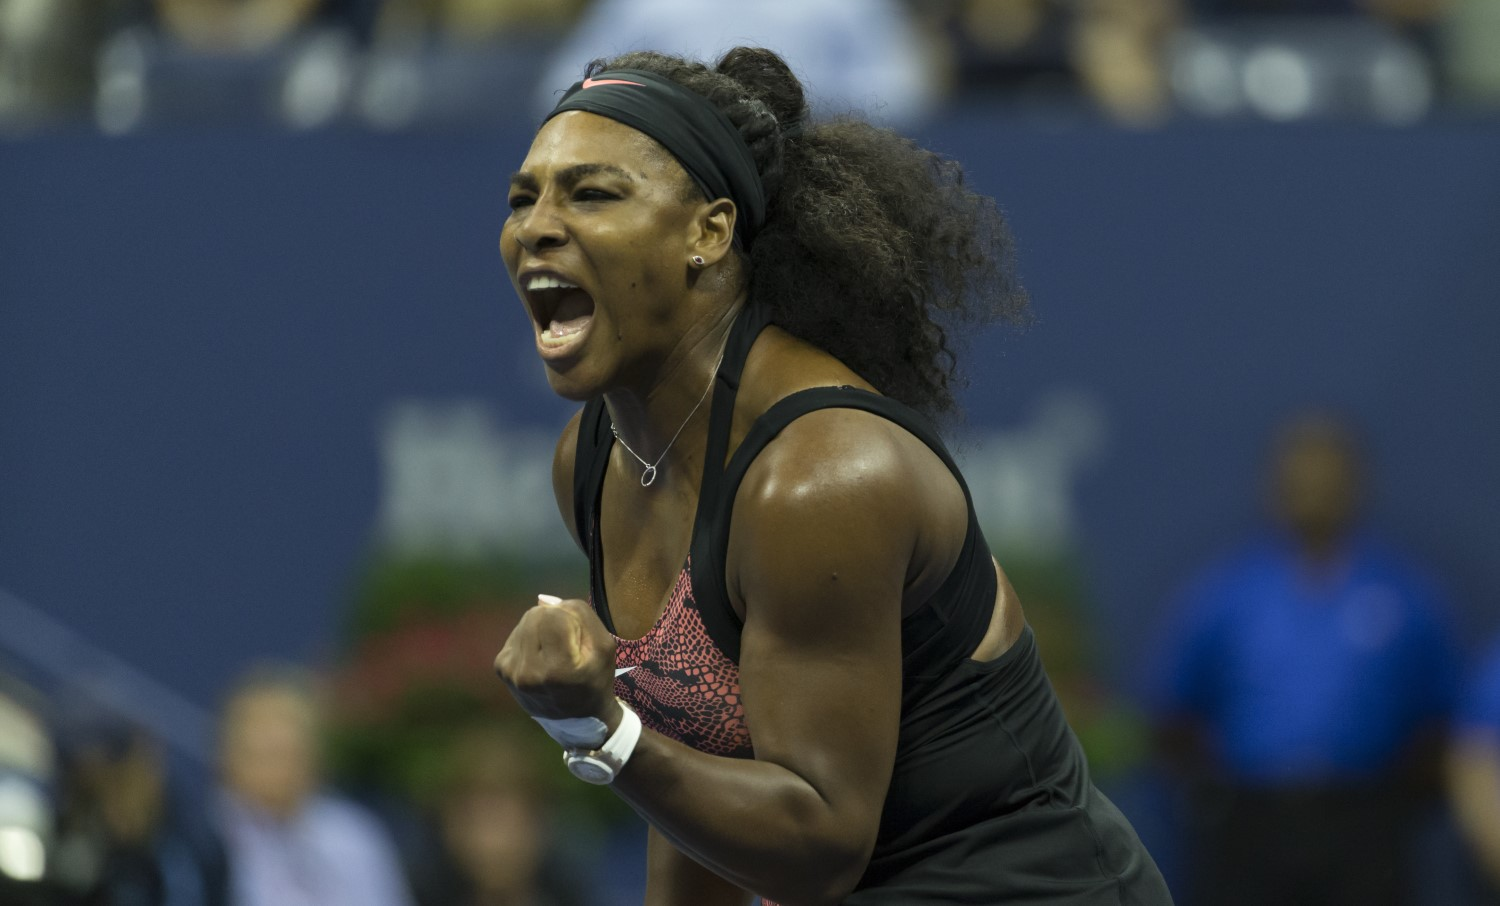 coindesk.com - Tennis Star Serena Williams Reveals Investment in Coinbase